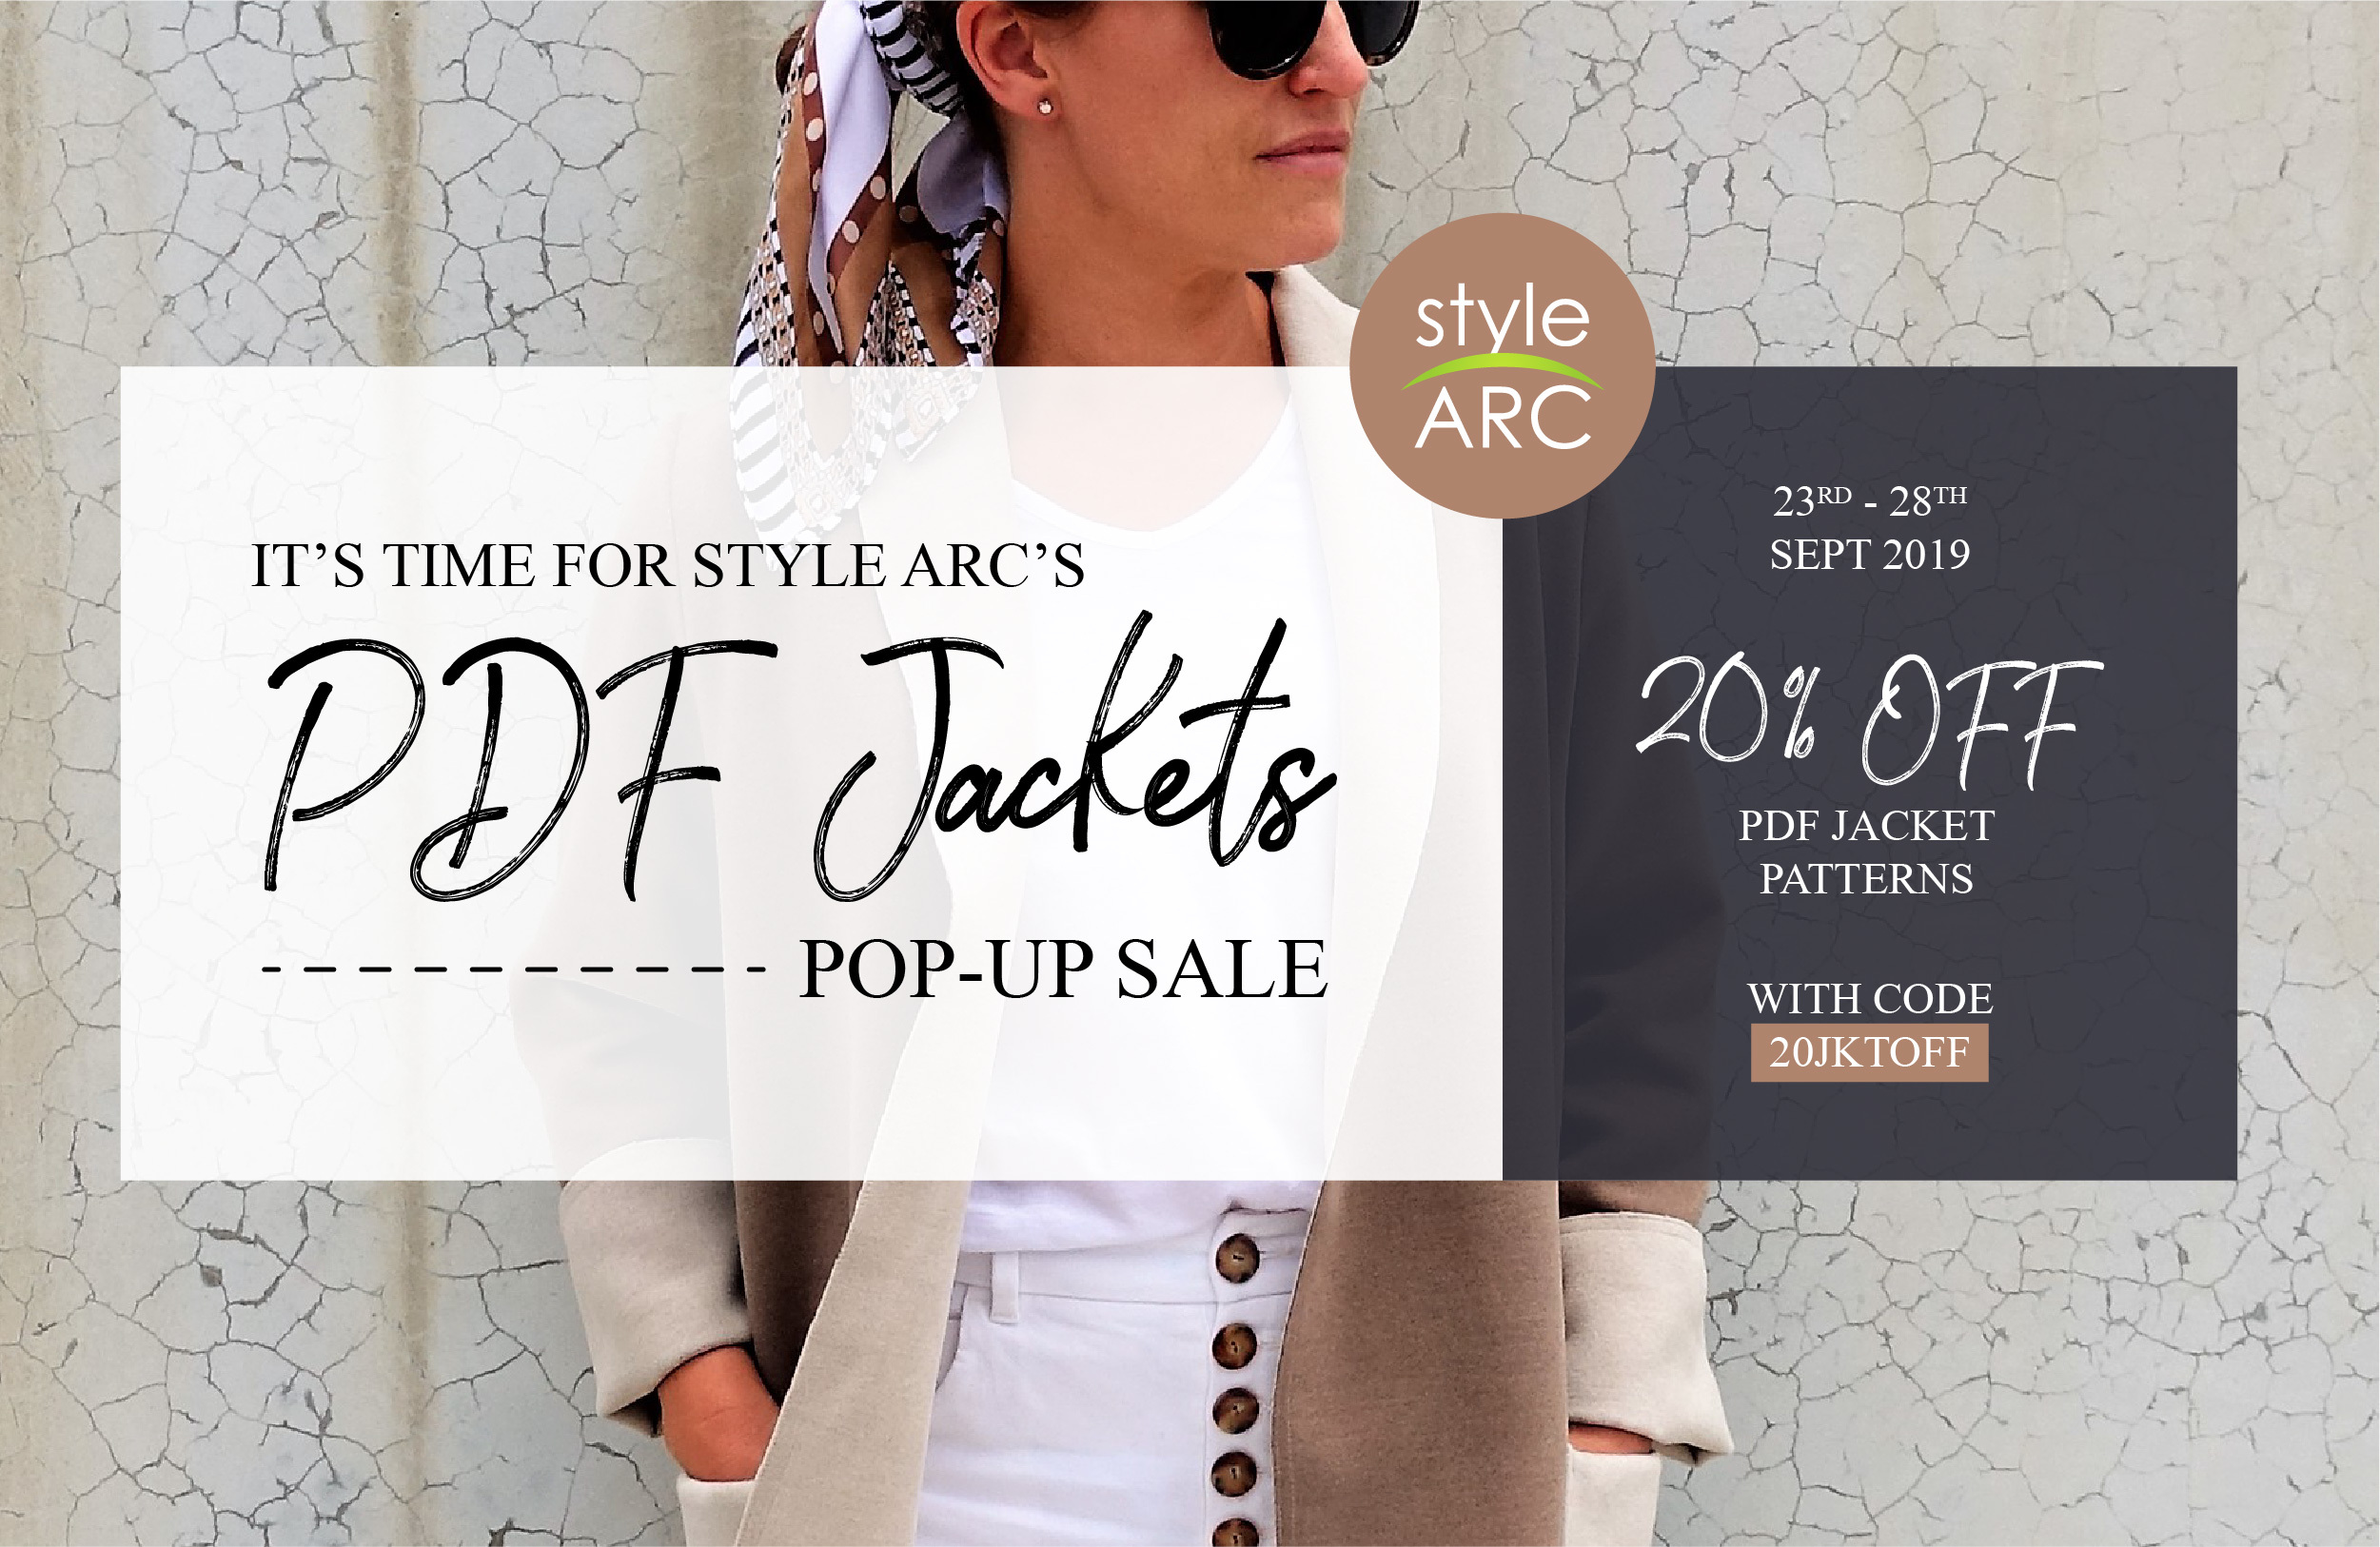 Carly Aviator Jacket - PDF Jacket Sale On Now! Sale runs from 23-28 September. Coupon Code: 20JKTOFF